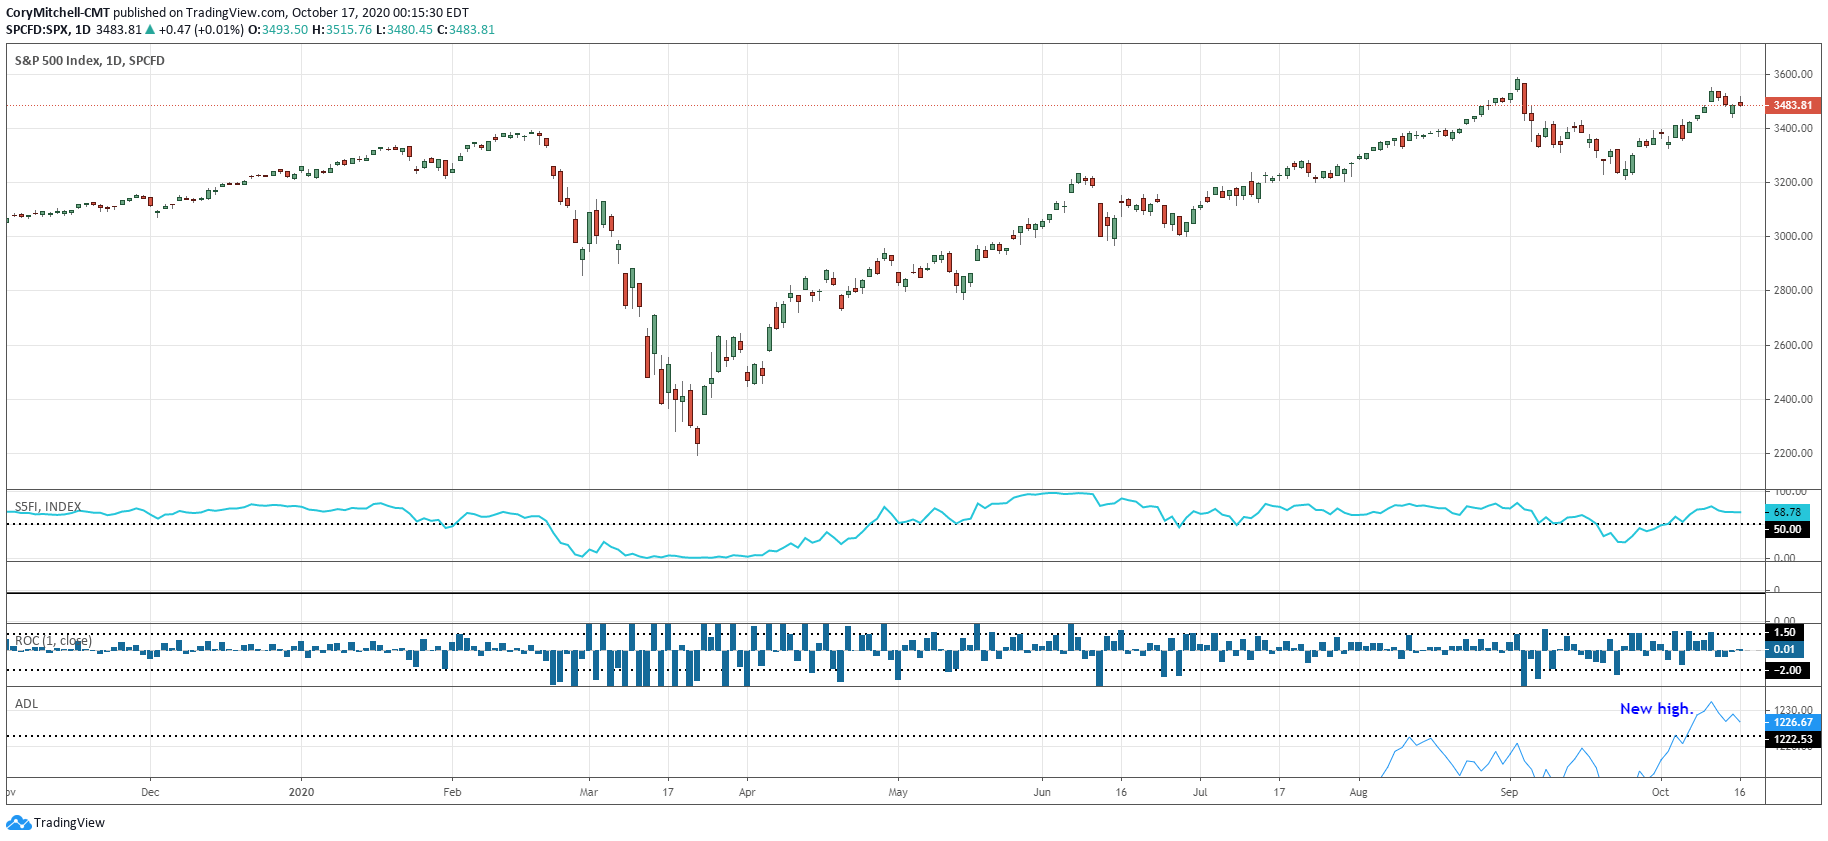 S&P 500 chart with indicator for assessing whether to swing trade stocks on the long side